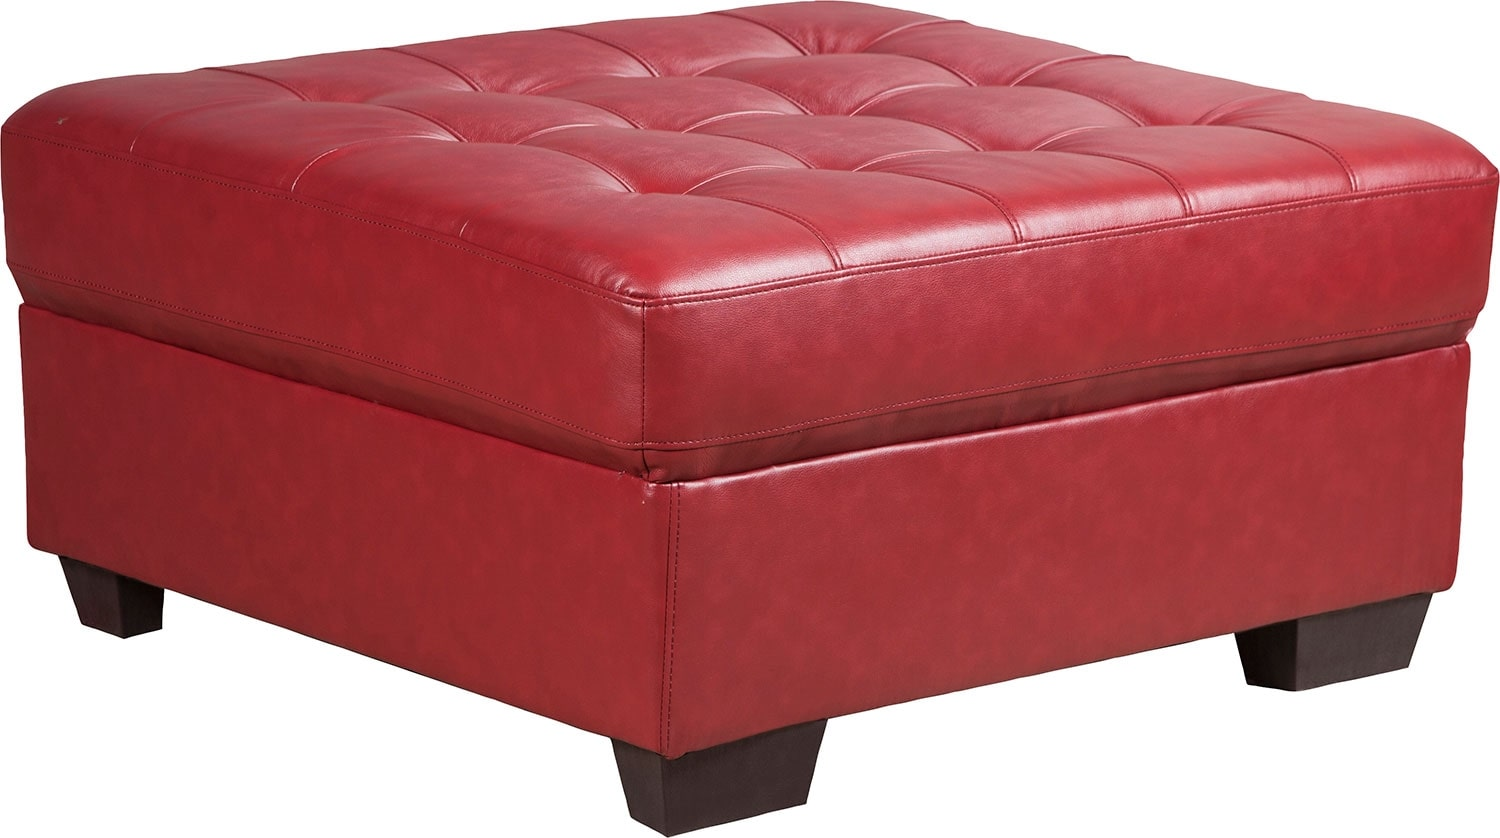 Tobi Bonded Leather Ottoman - Red